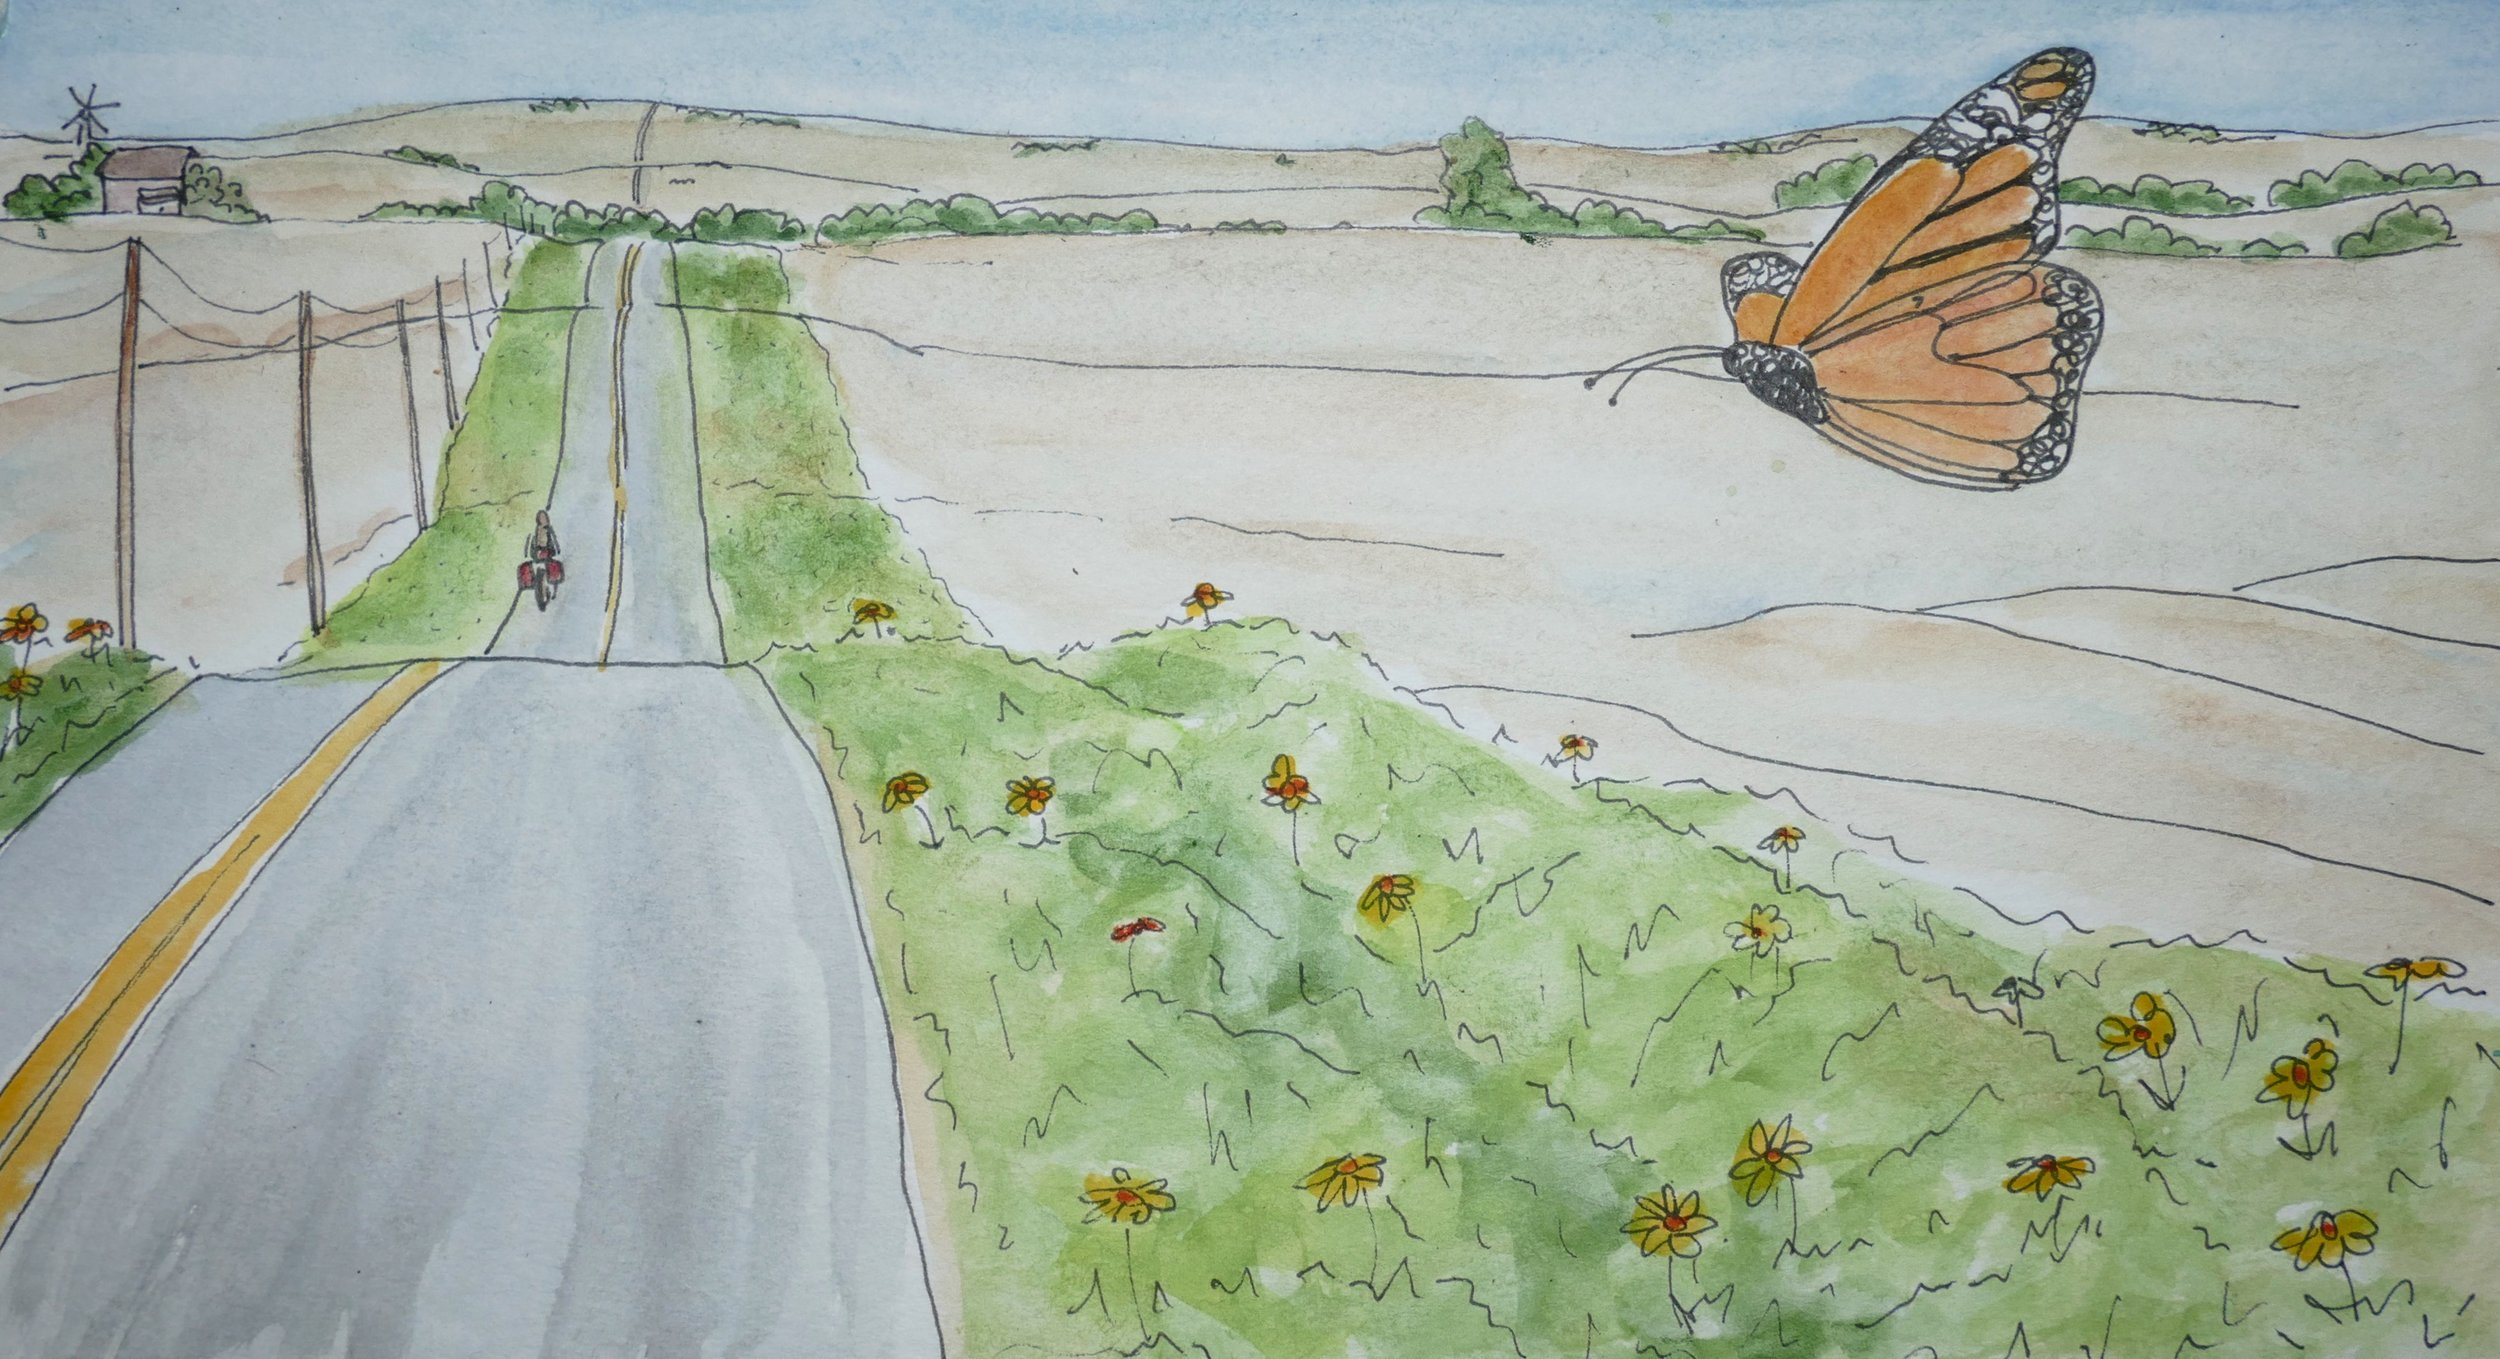 Q. I didn't paint the ugliest, but rather painted my hope. Farmers giving roadside habit to pollinators, and protecting the wild from pesticides, herbicides, and entitlement.